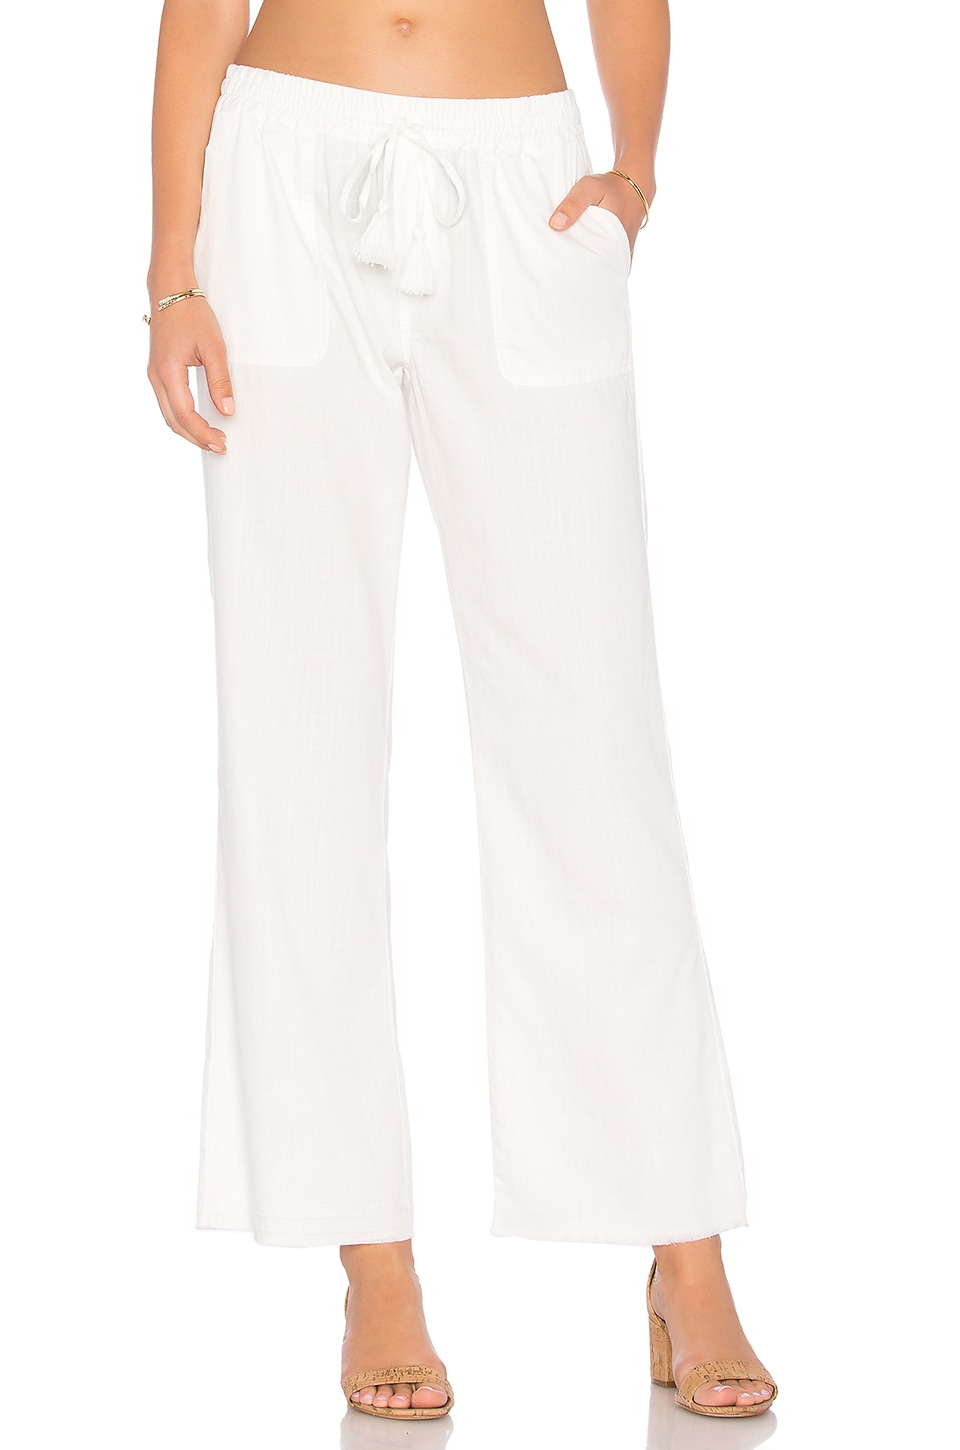 Soft Joie Dominik Pant in Porcelain